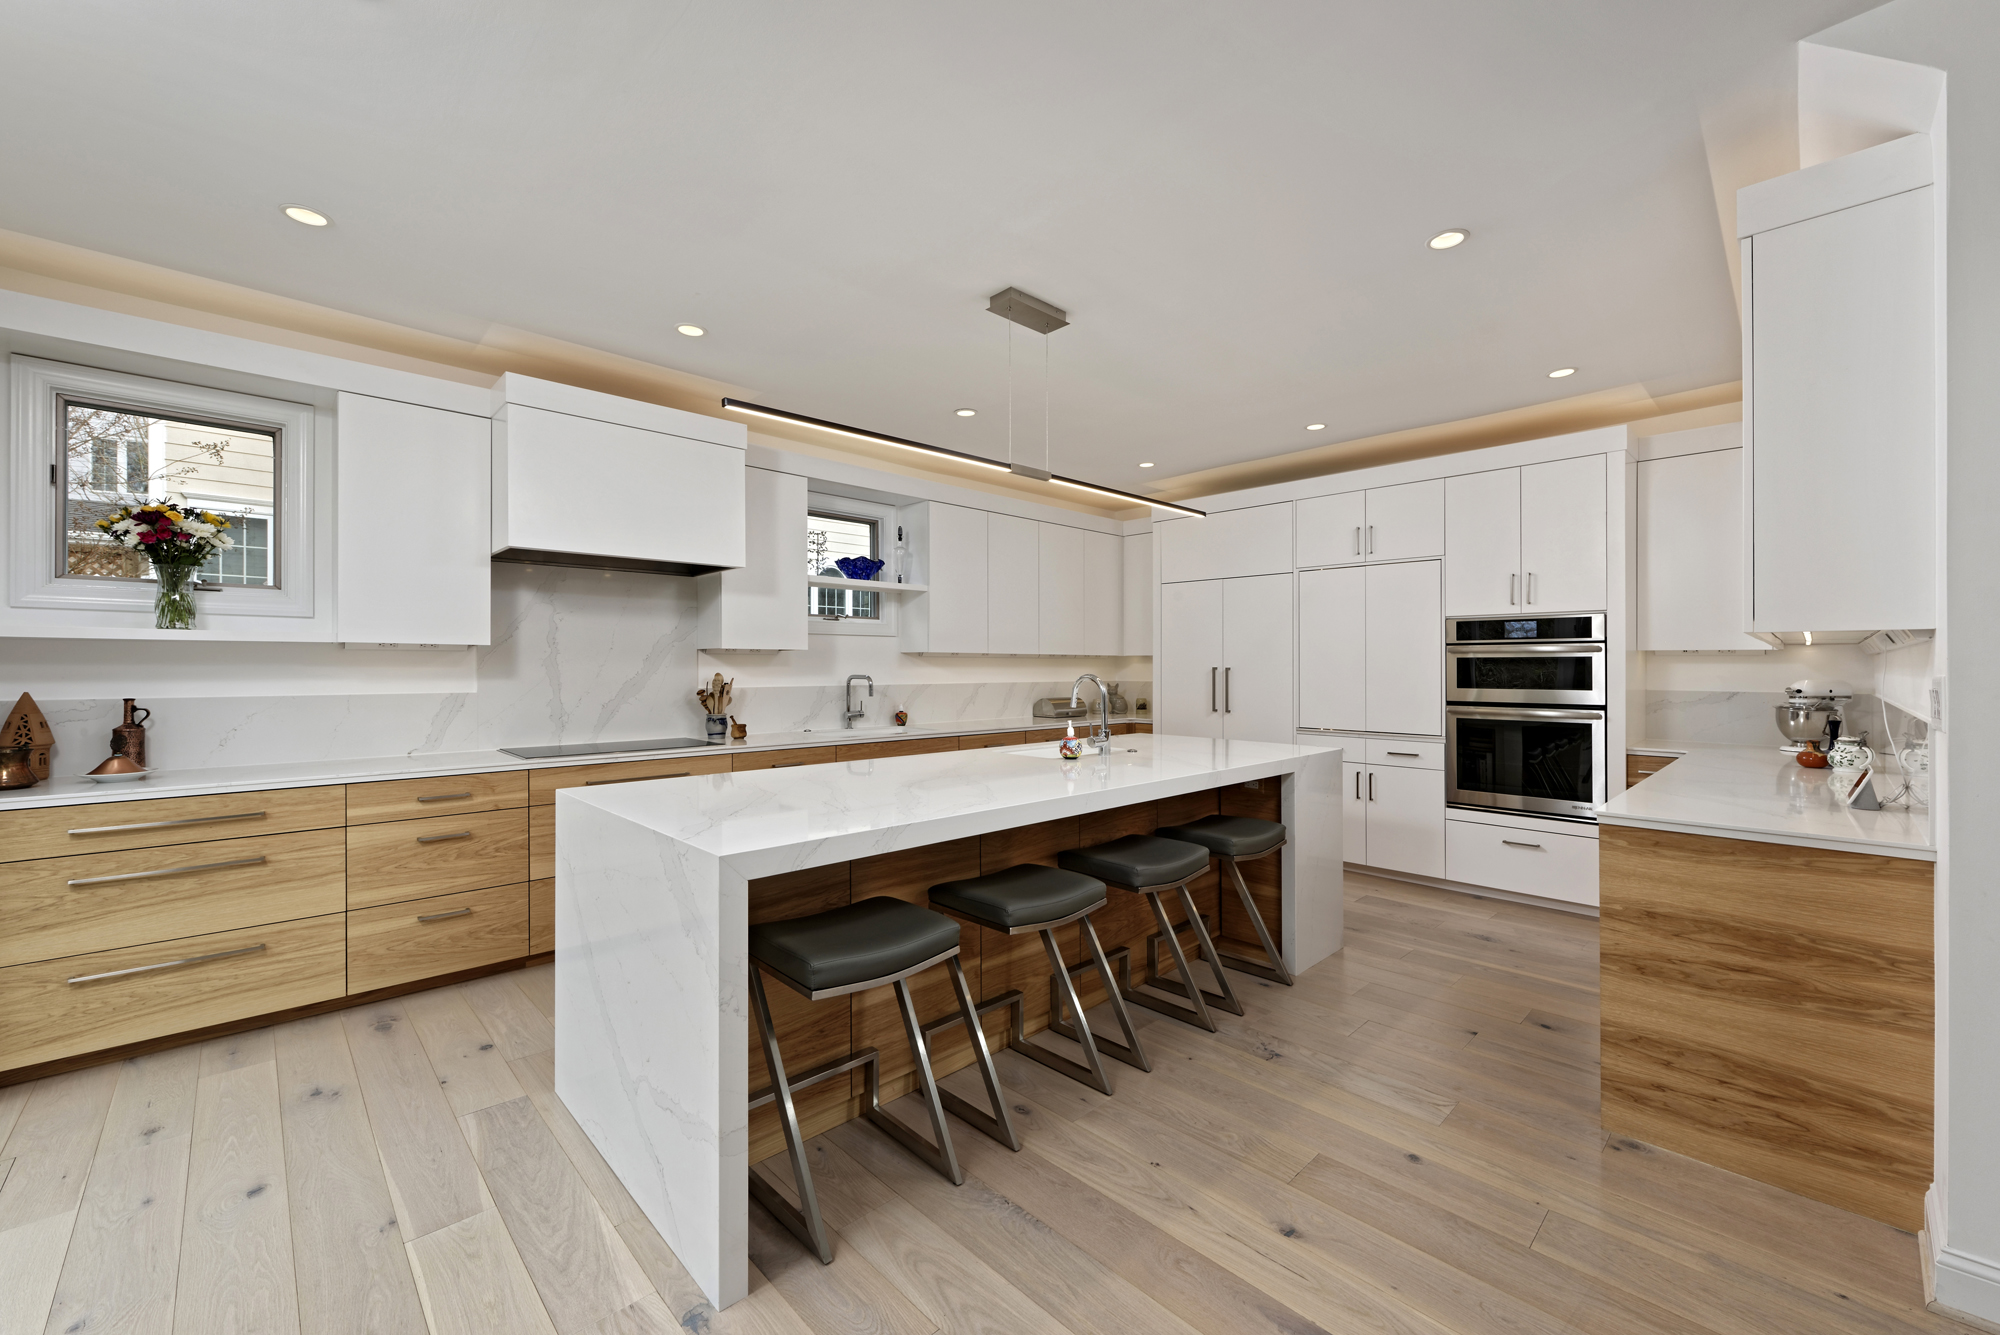 Kitchens Breakfast Dining Rooms Photo Gallery Bowa Design